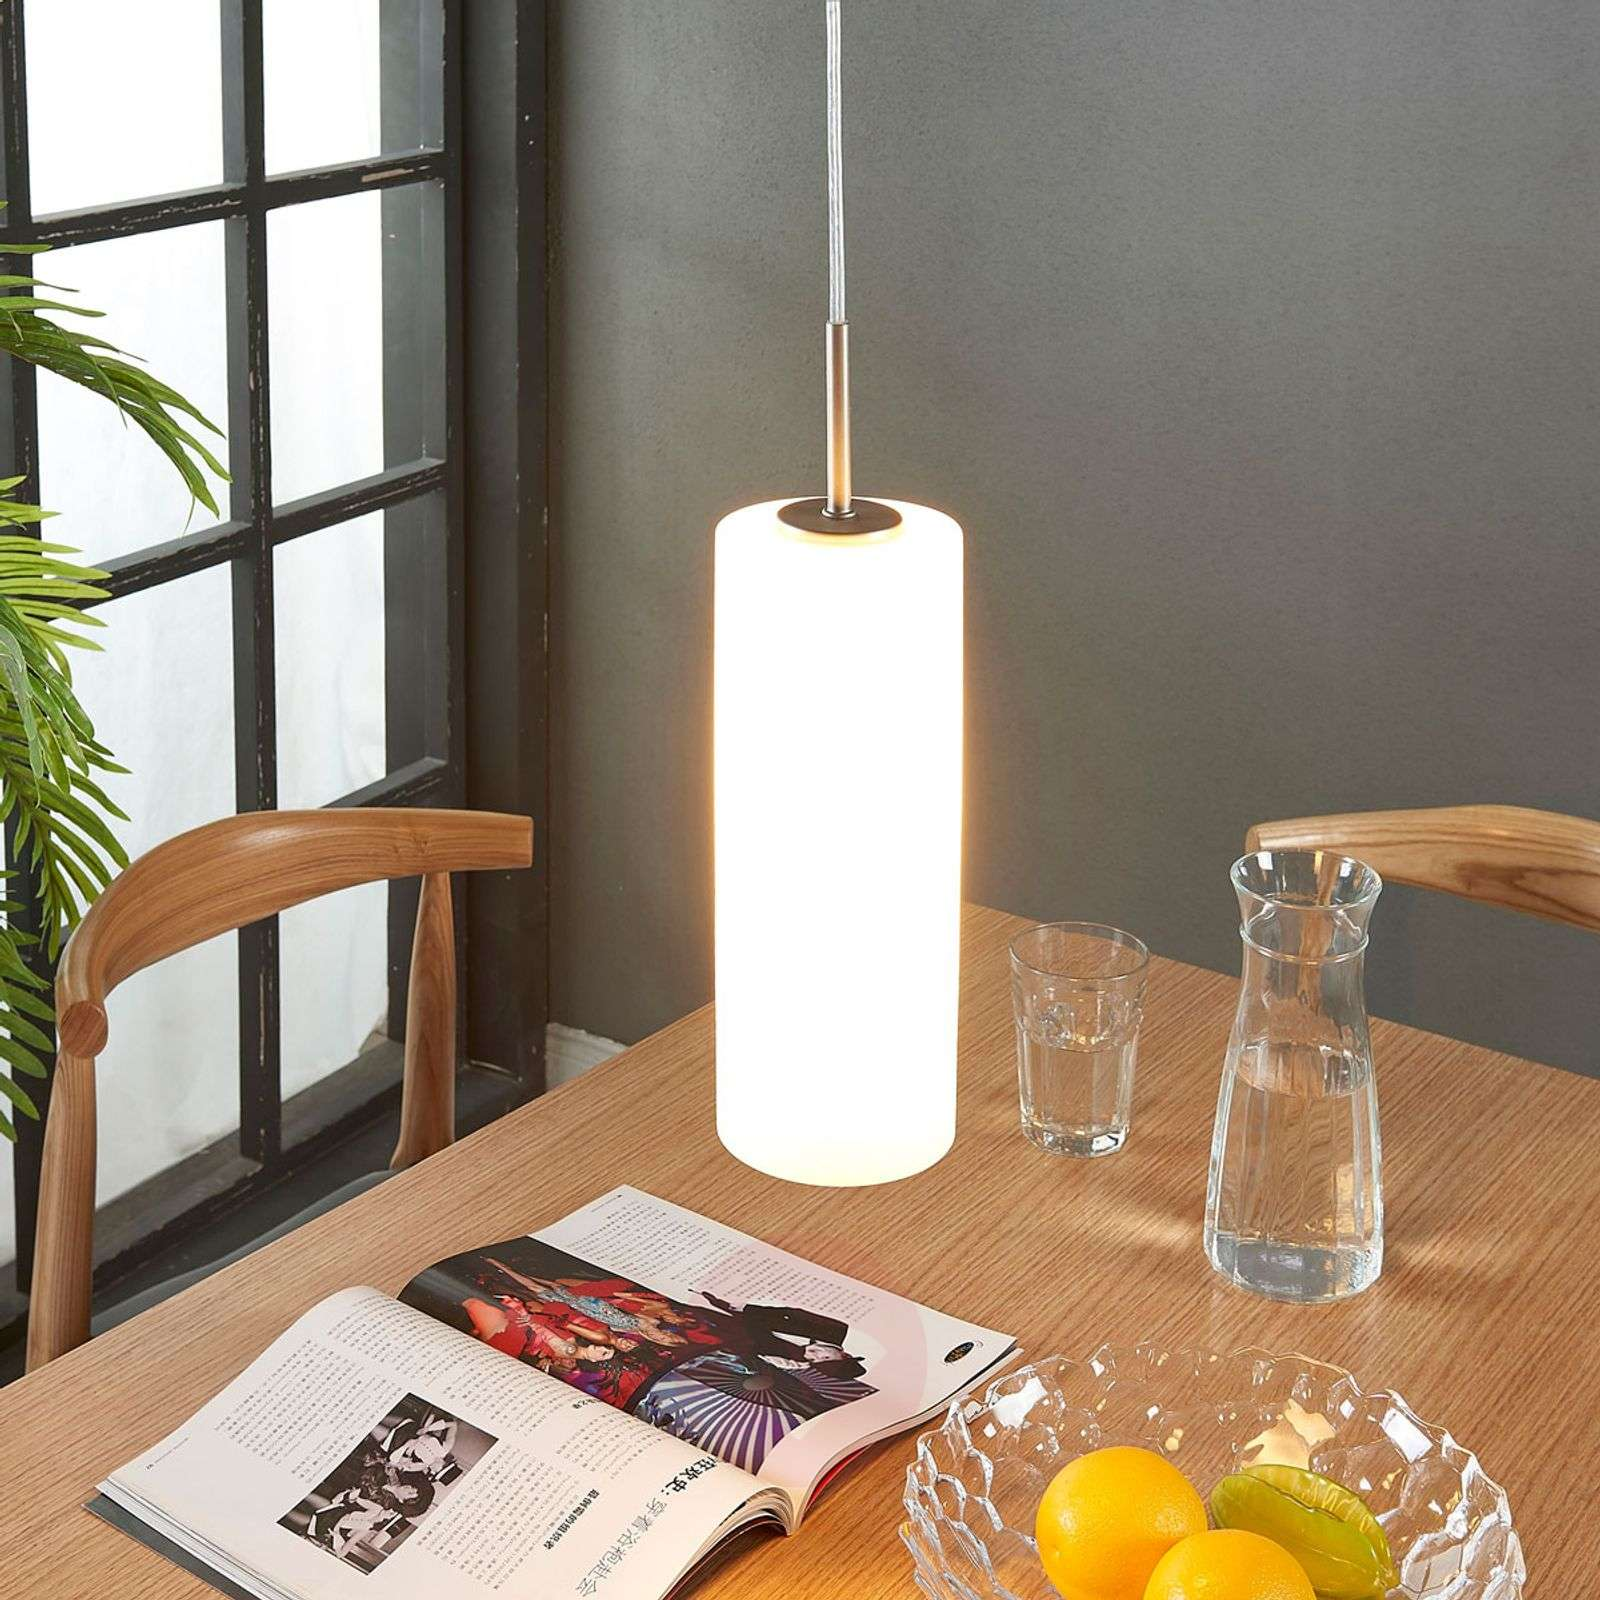 Simple pendant light Vinsta in a slim design-9621002-06